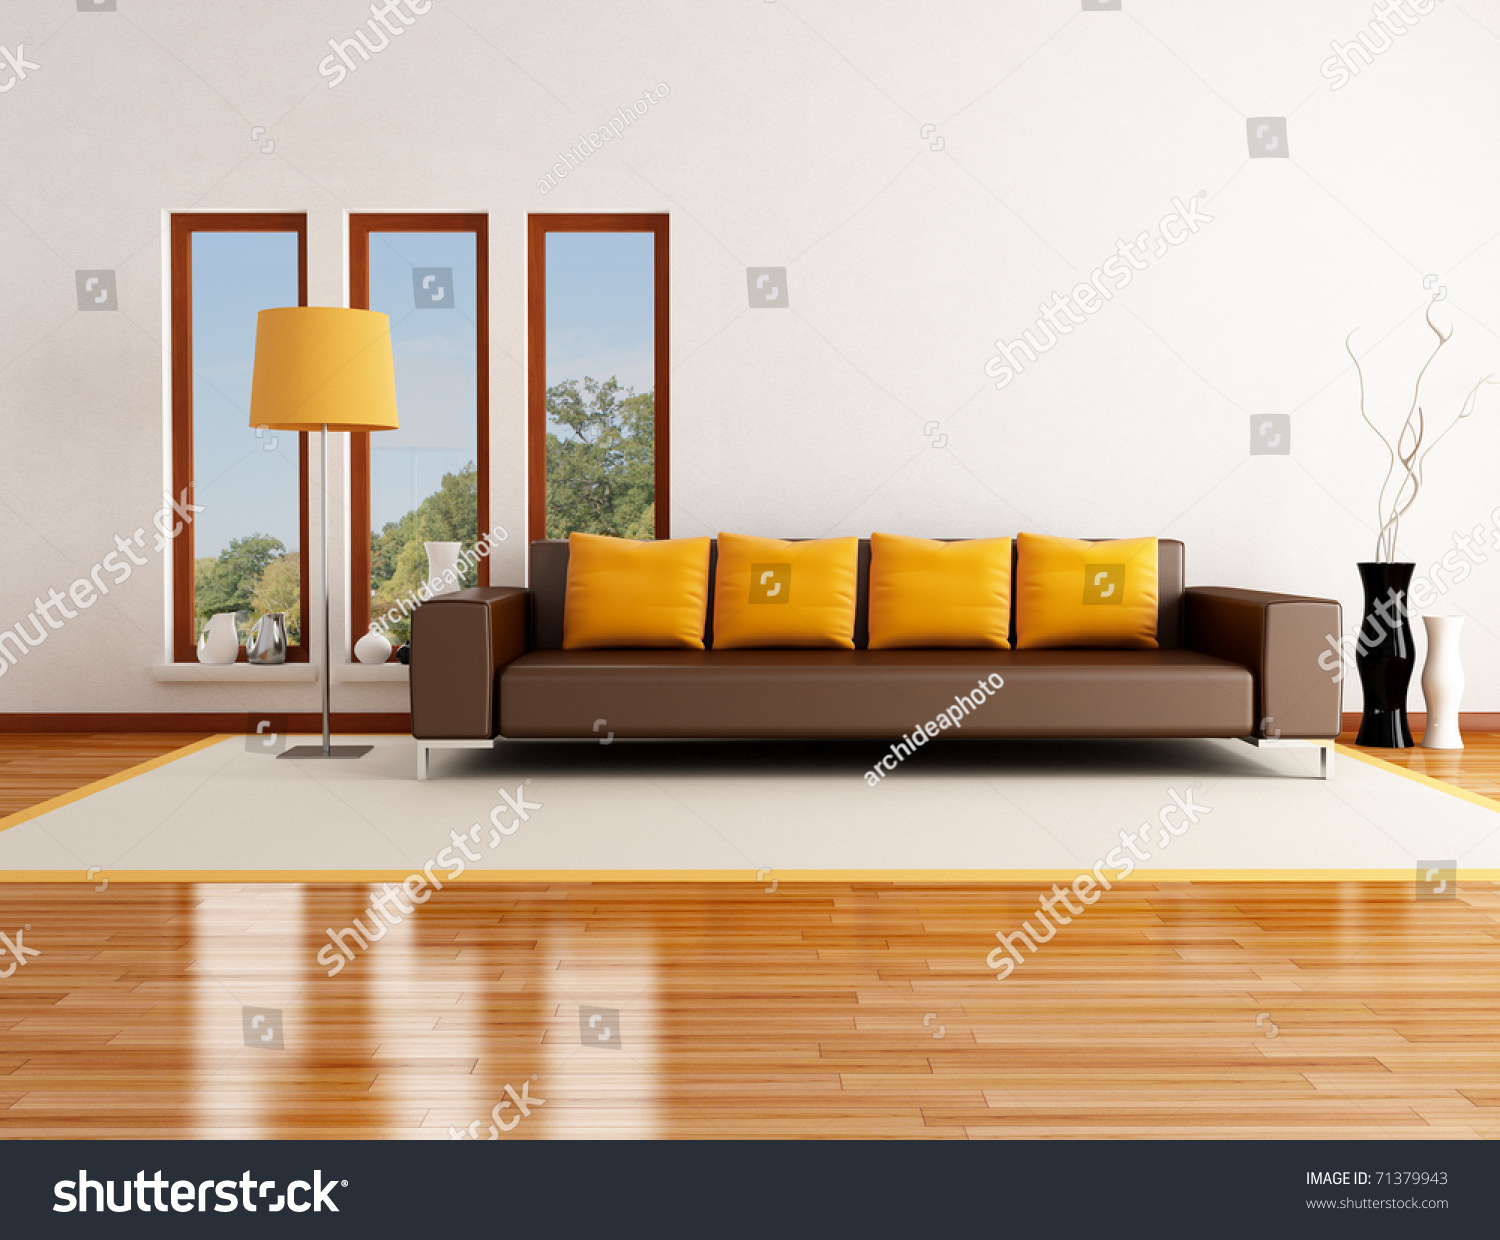 Modern living room background - Modern Living Room In A Country House Rendering The Image On Background Is A